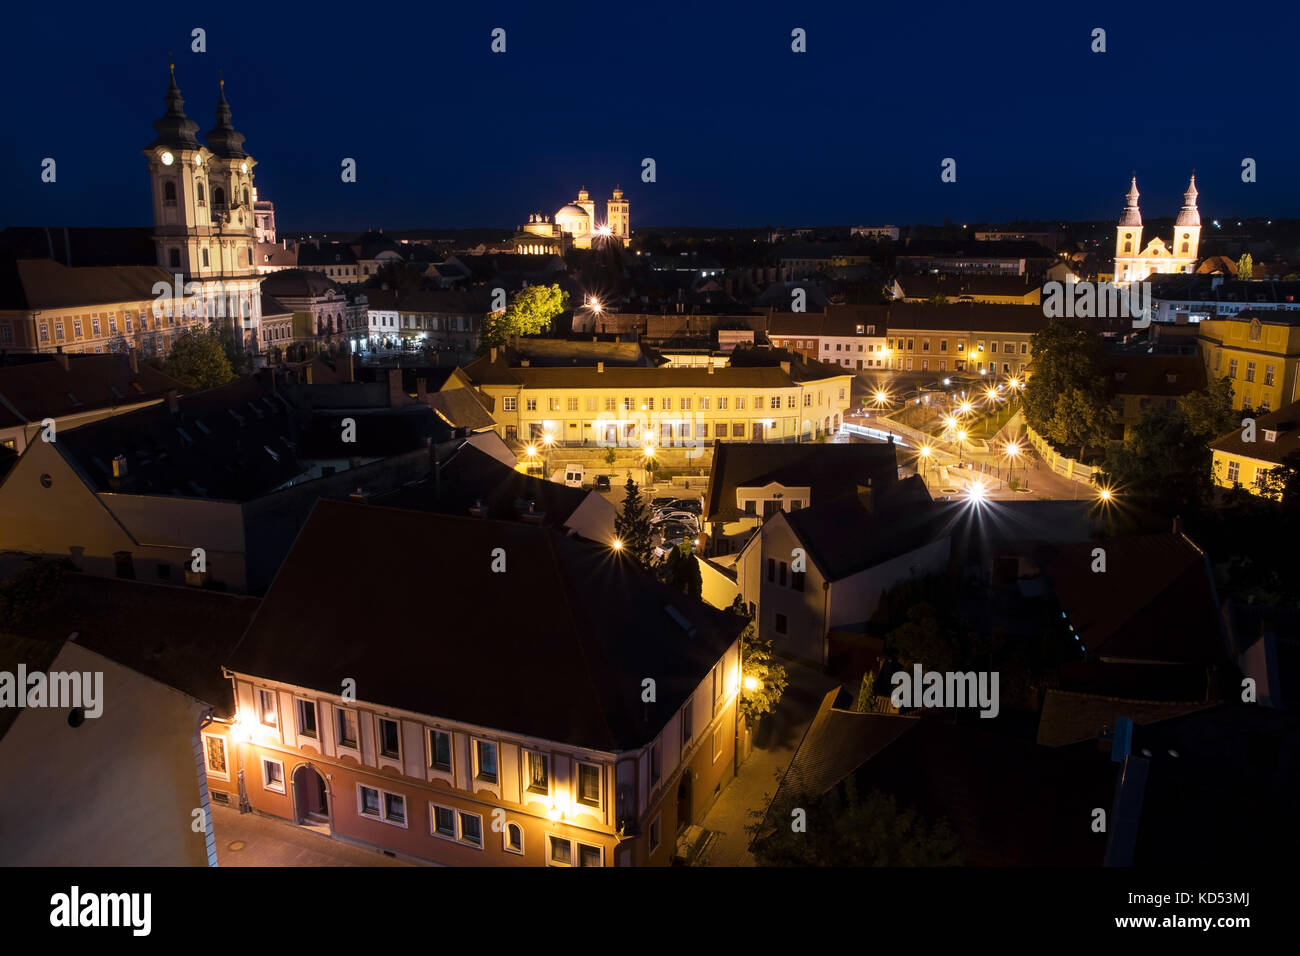 View of Eger from the castle at night, Hungary - Stock Image